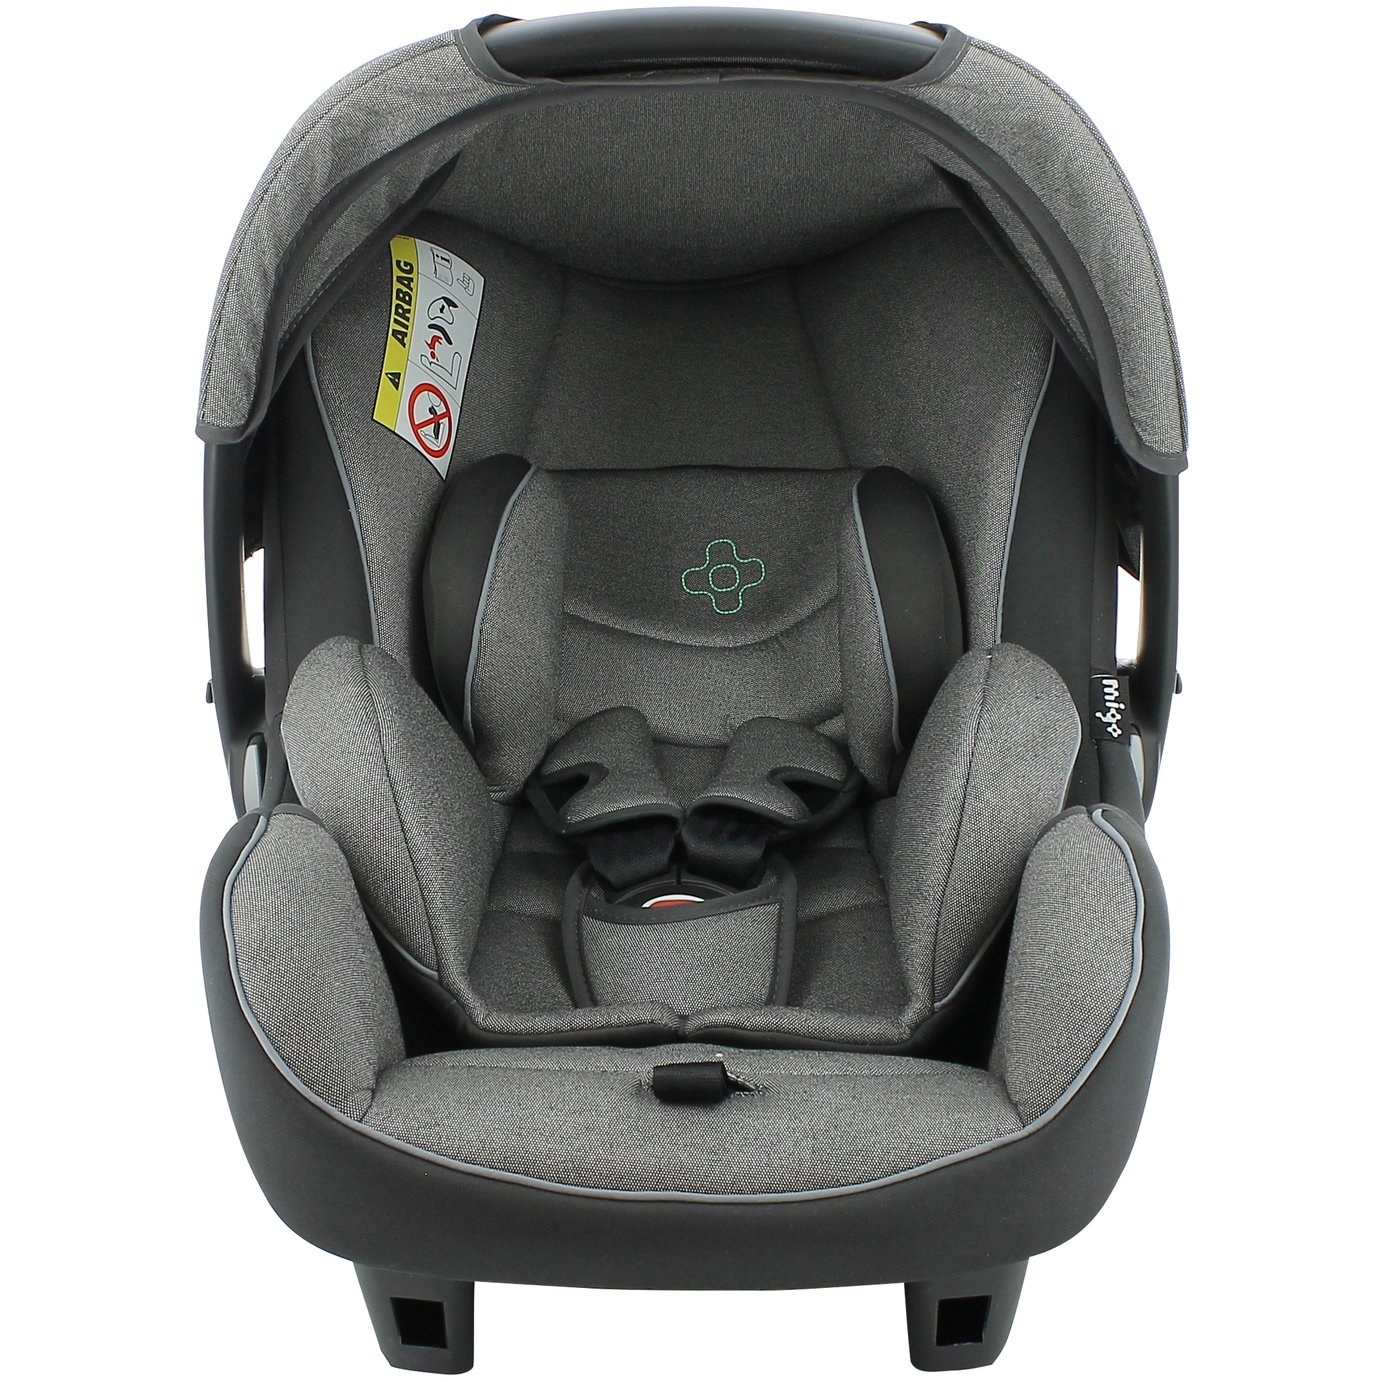 Migo Beone Platinum Group 0+ Car Seat - Grey